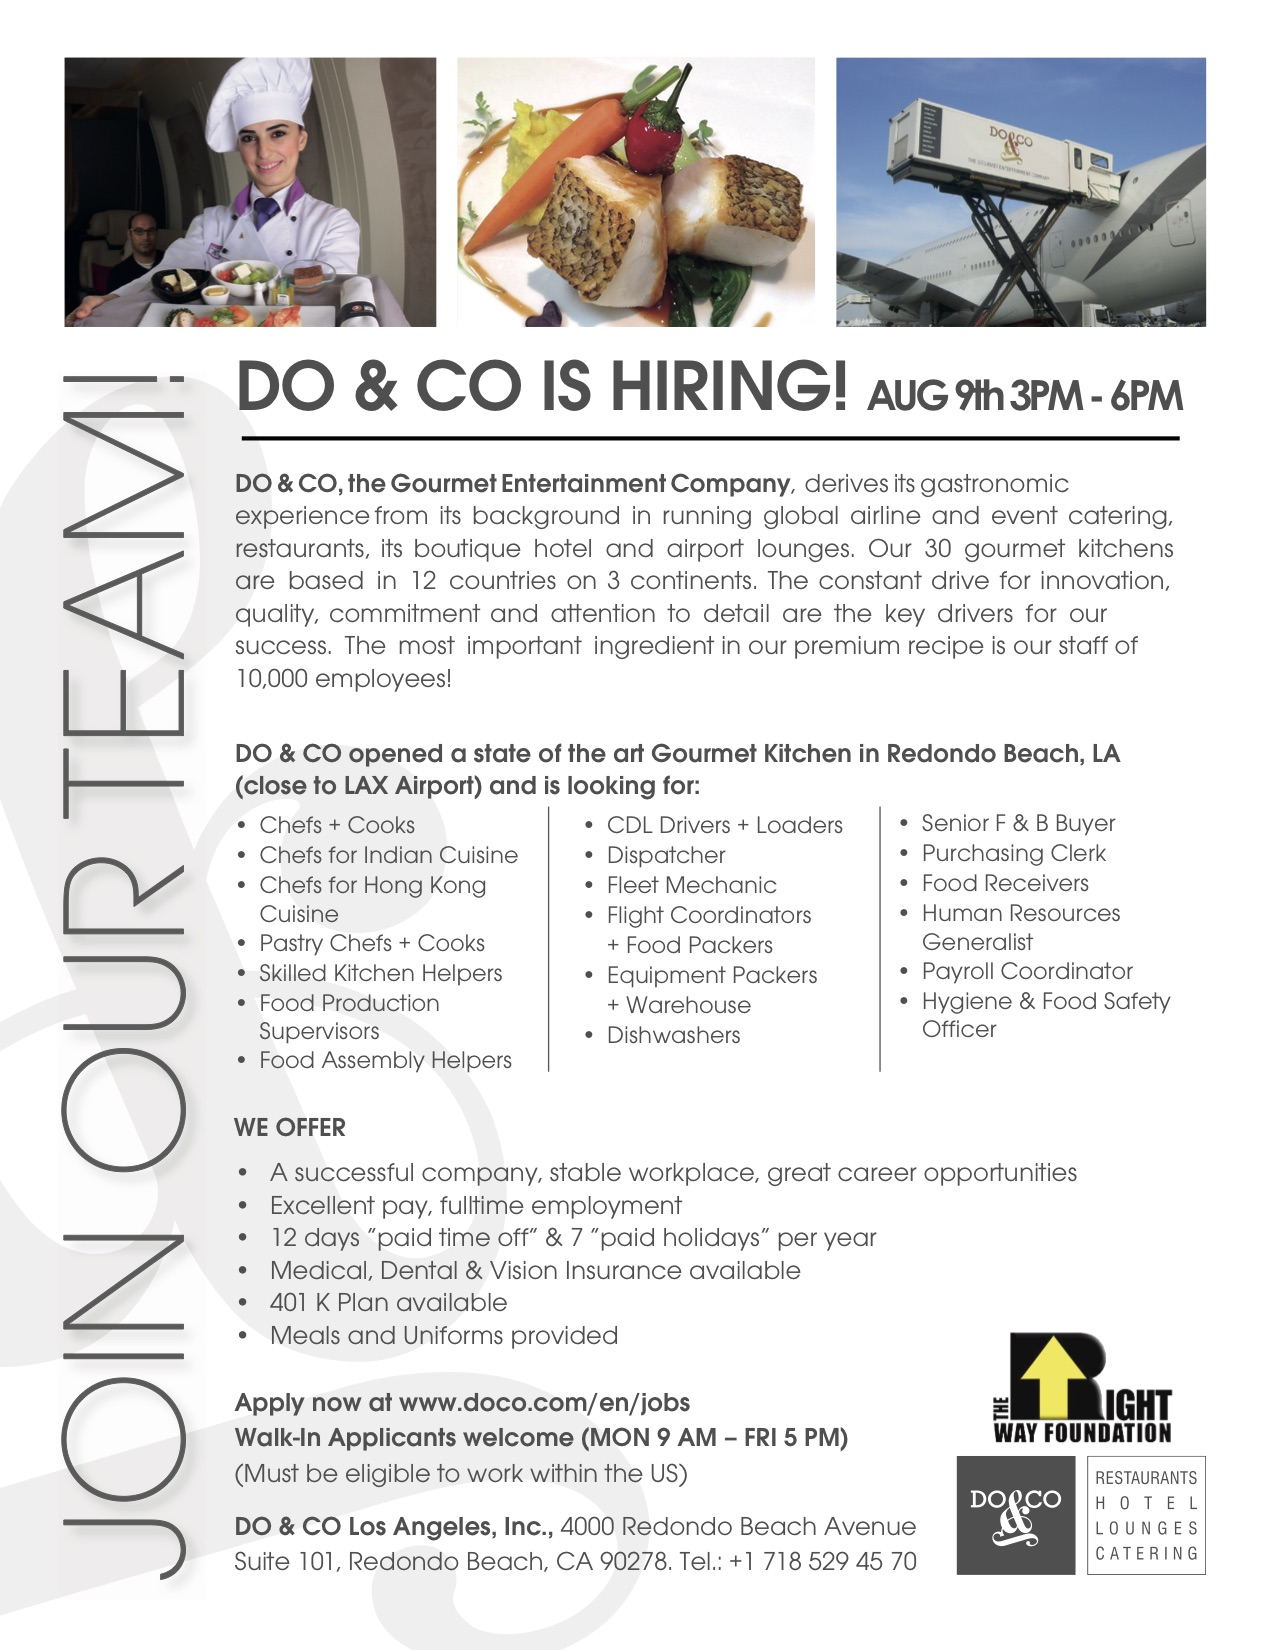 Job Fair for Do&Co Catering Company at LAX—Announcements